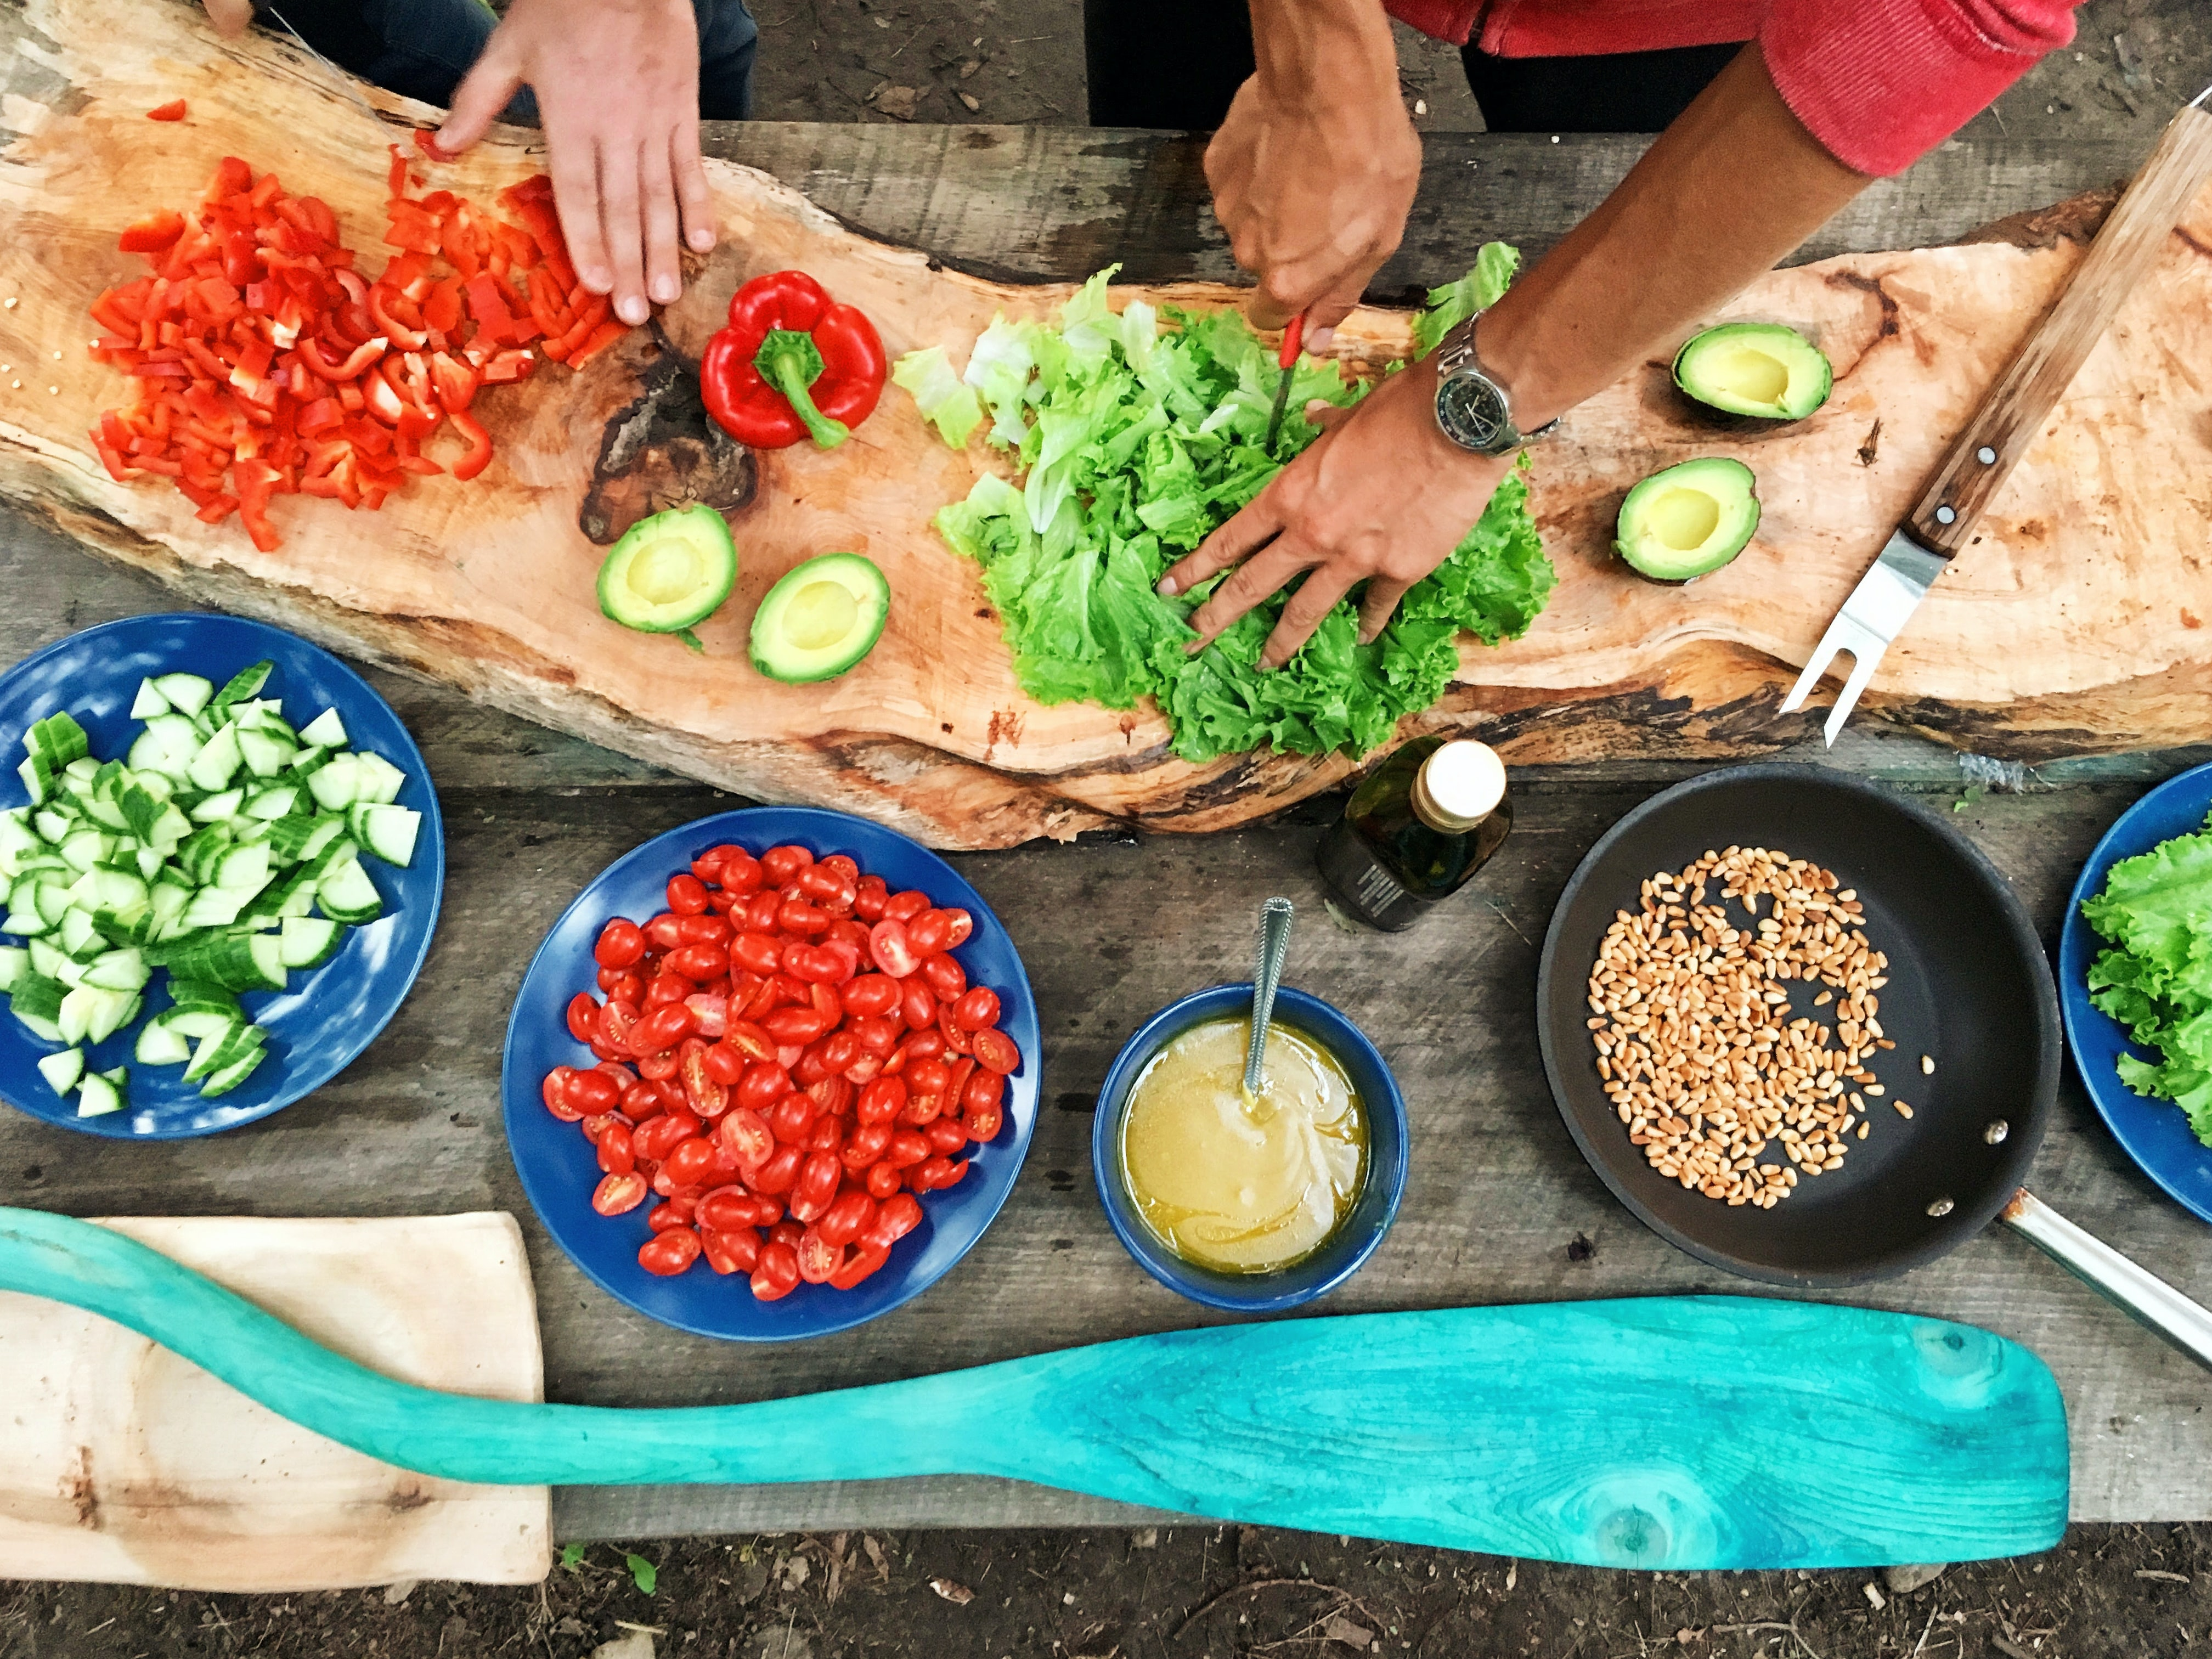 Images showing people cooking with lots of chopped vegetables